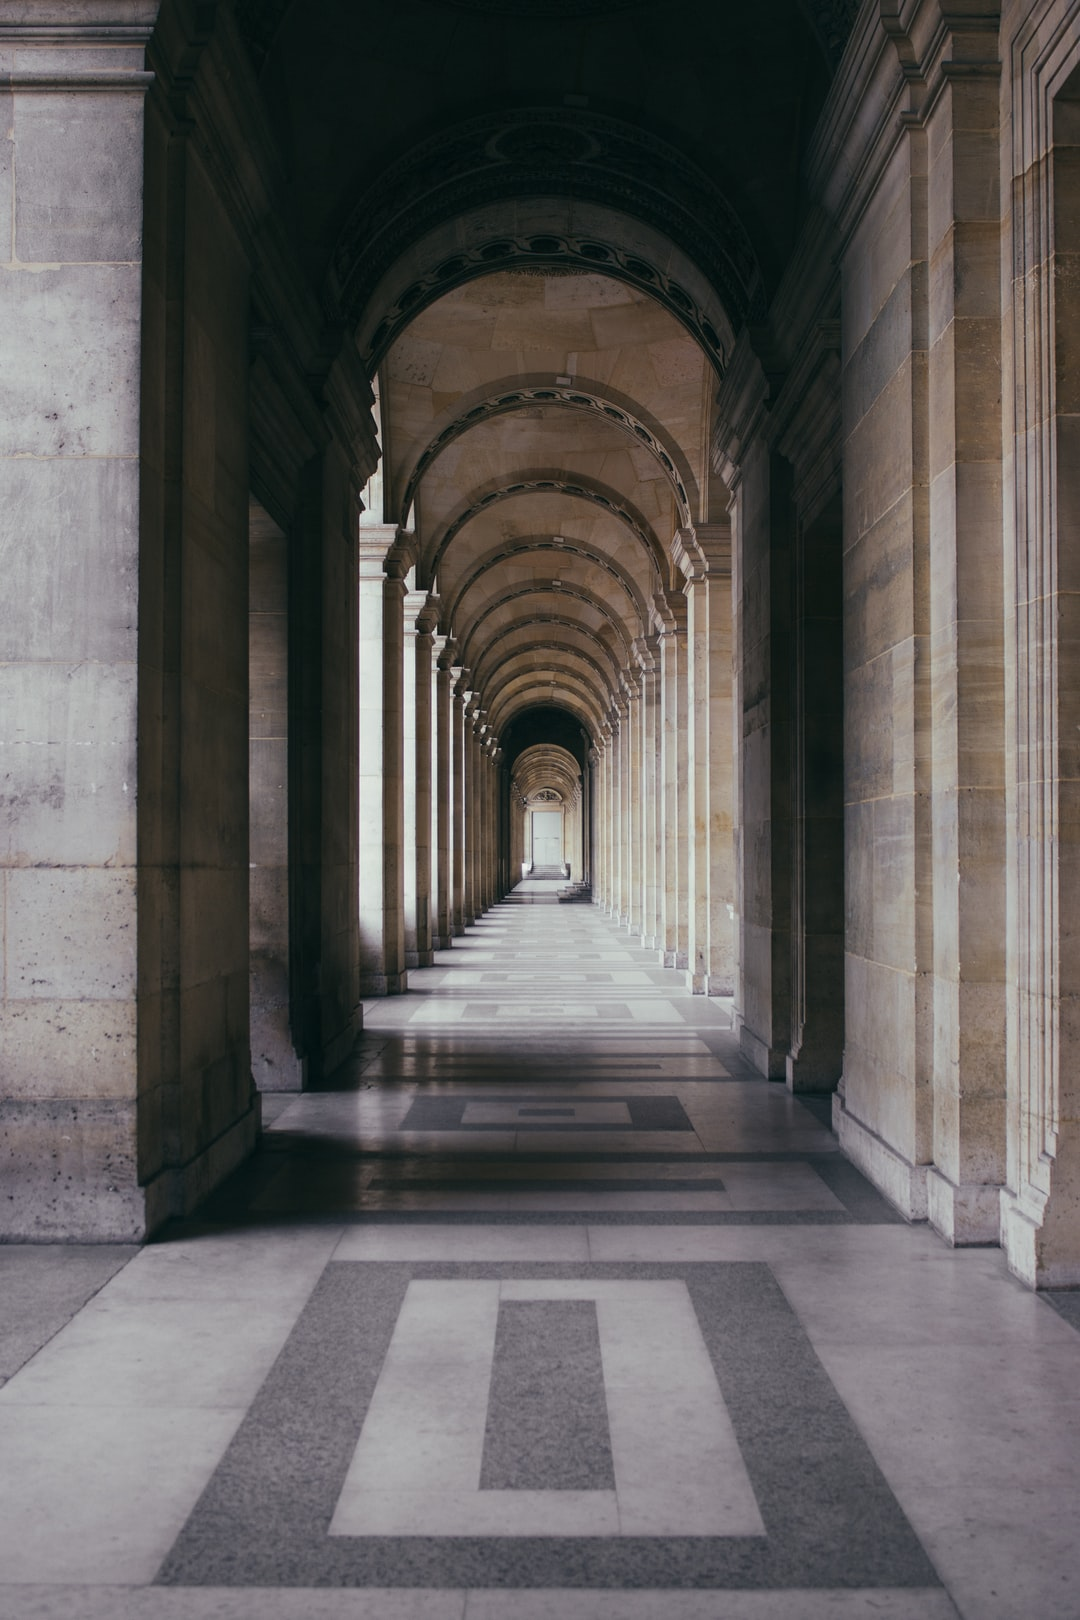 Hallway of marble arches